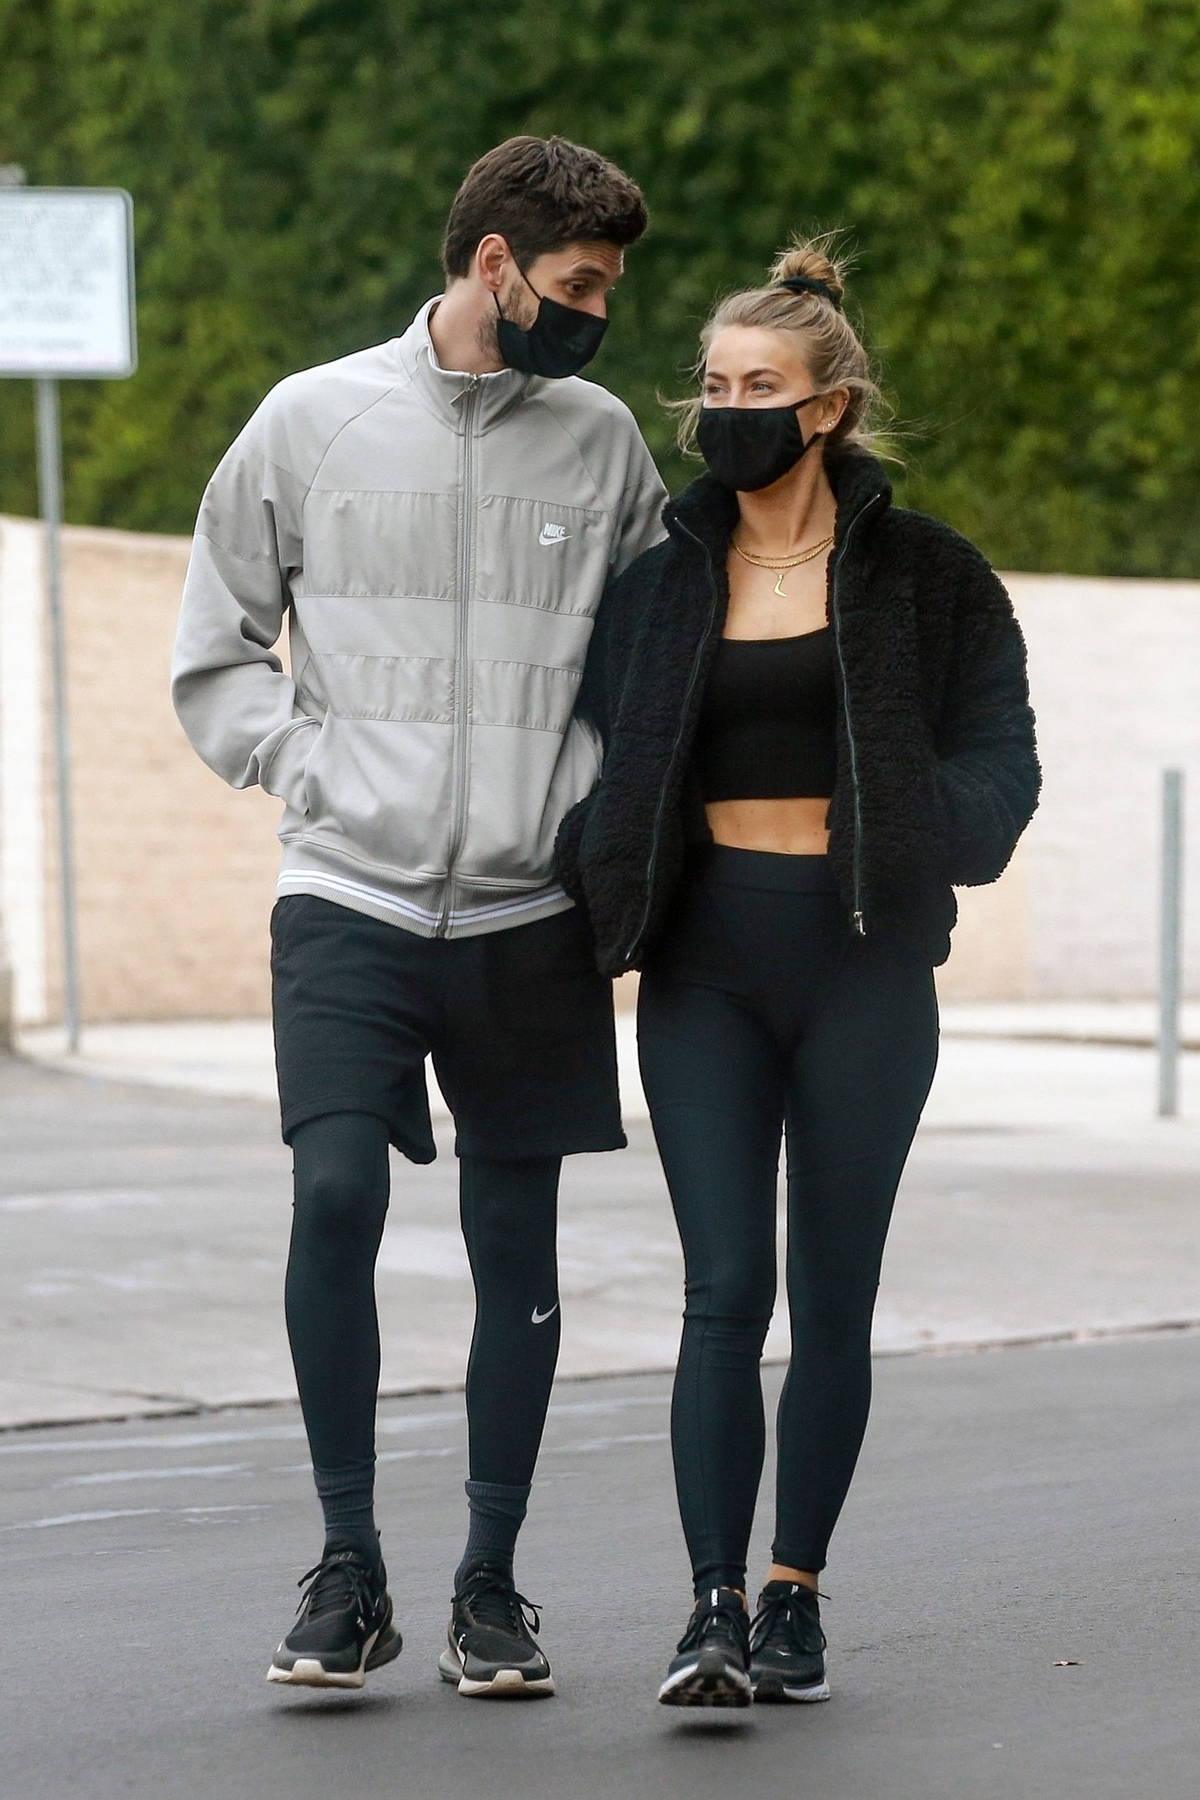 Julianne Hough looks smitten while out for ice cream with Ben Barnes at Salt & Straw in Los Angeles